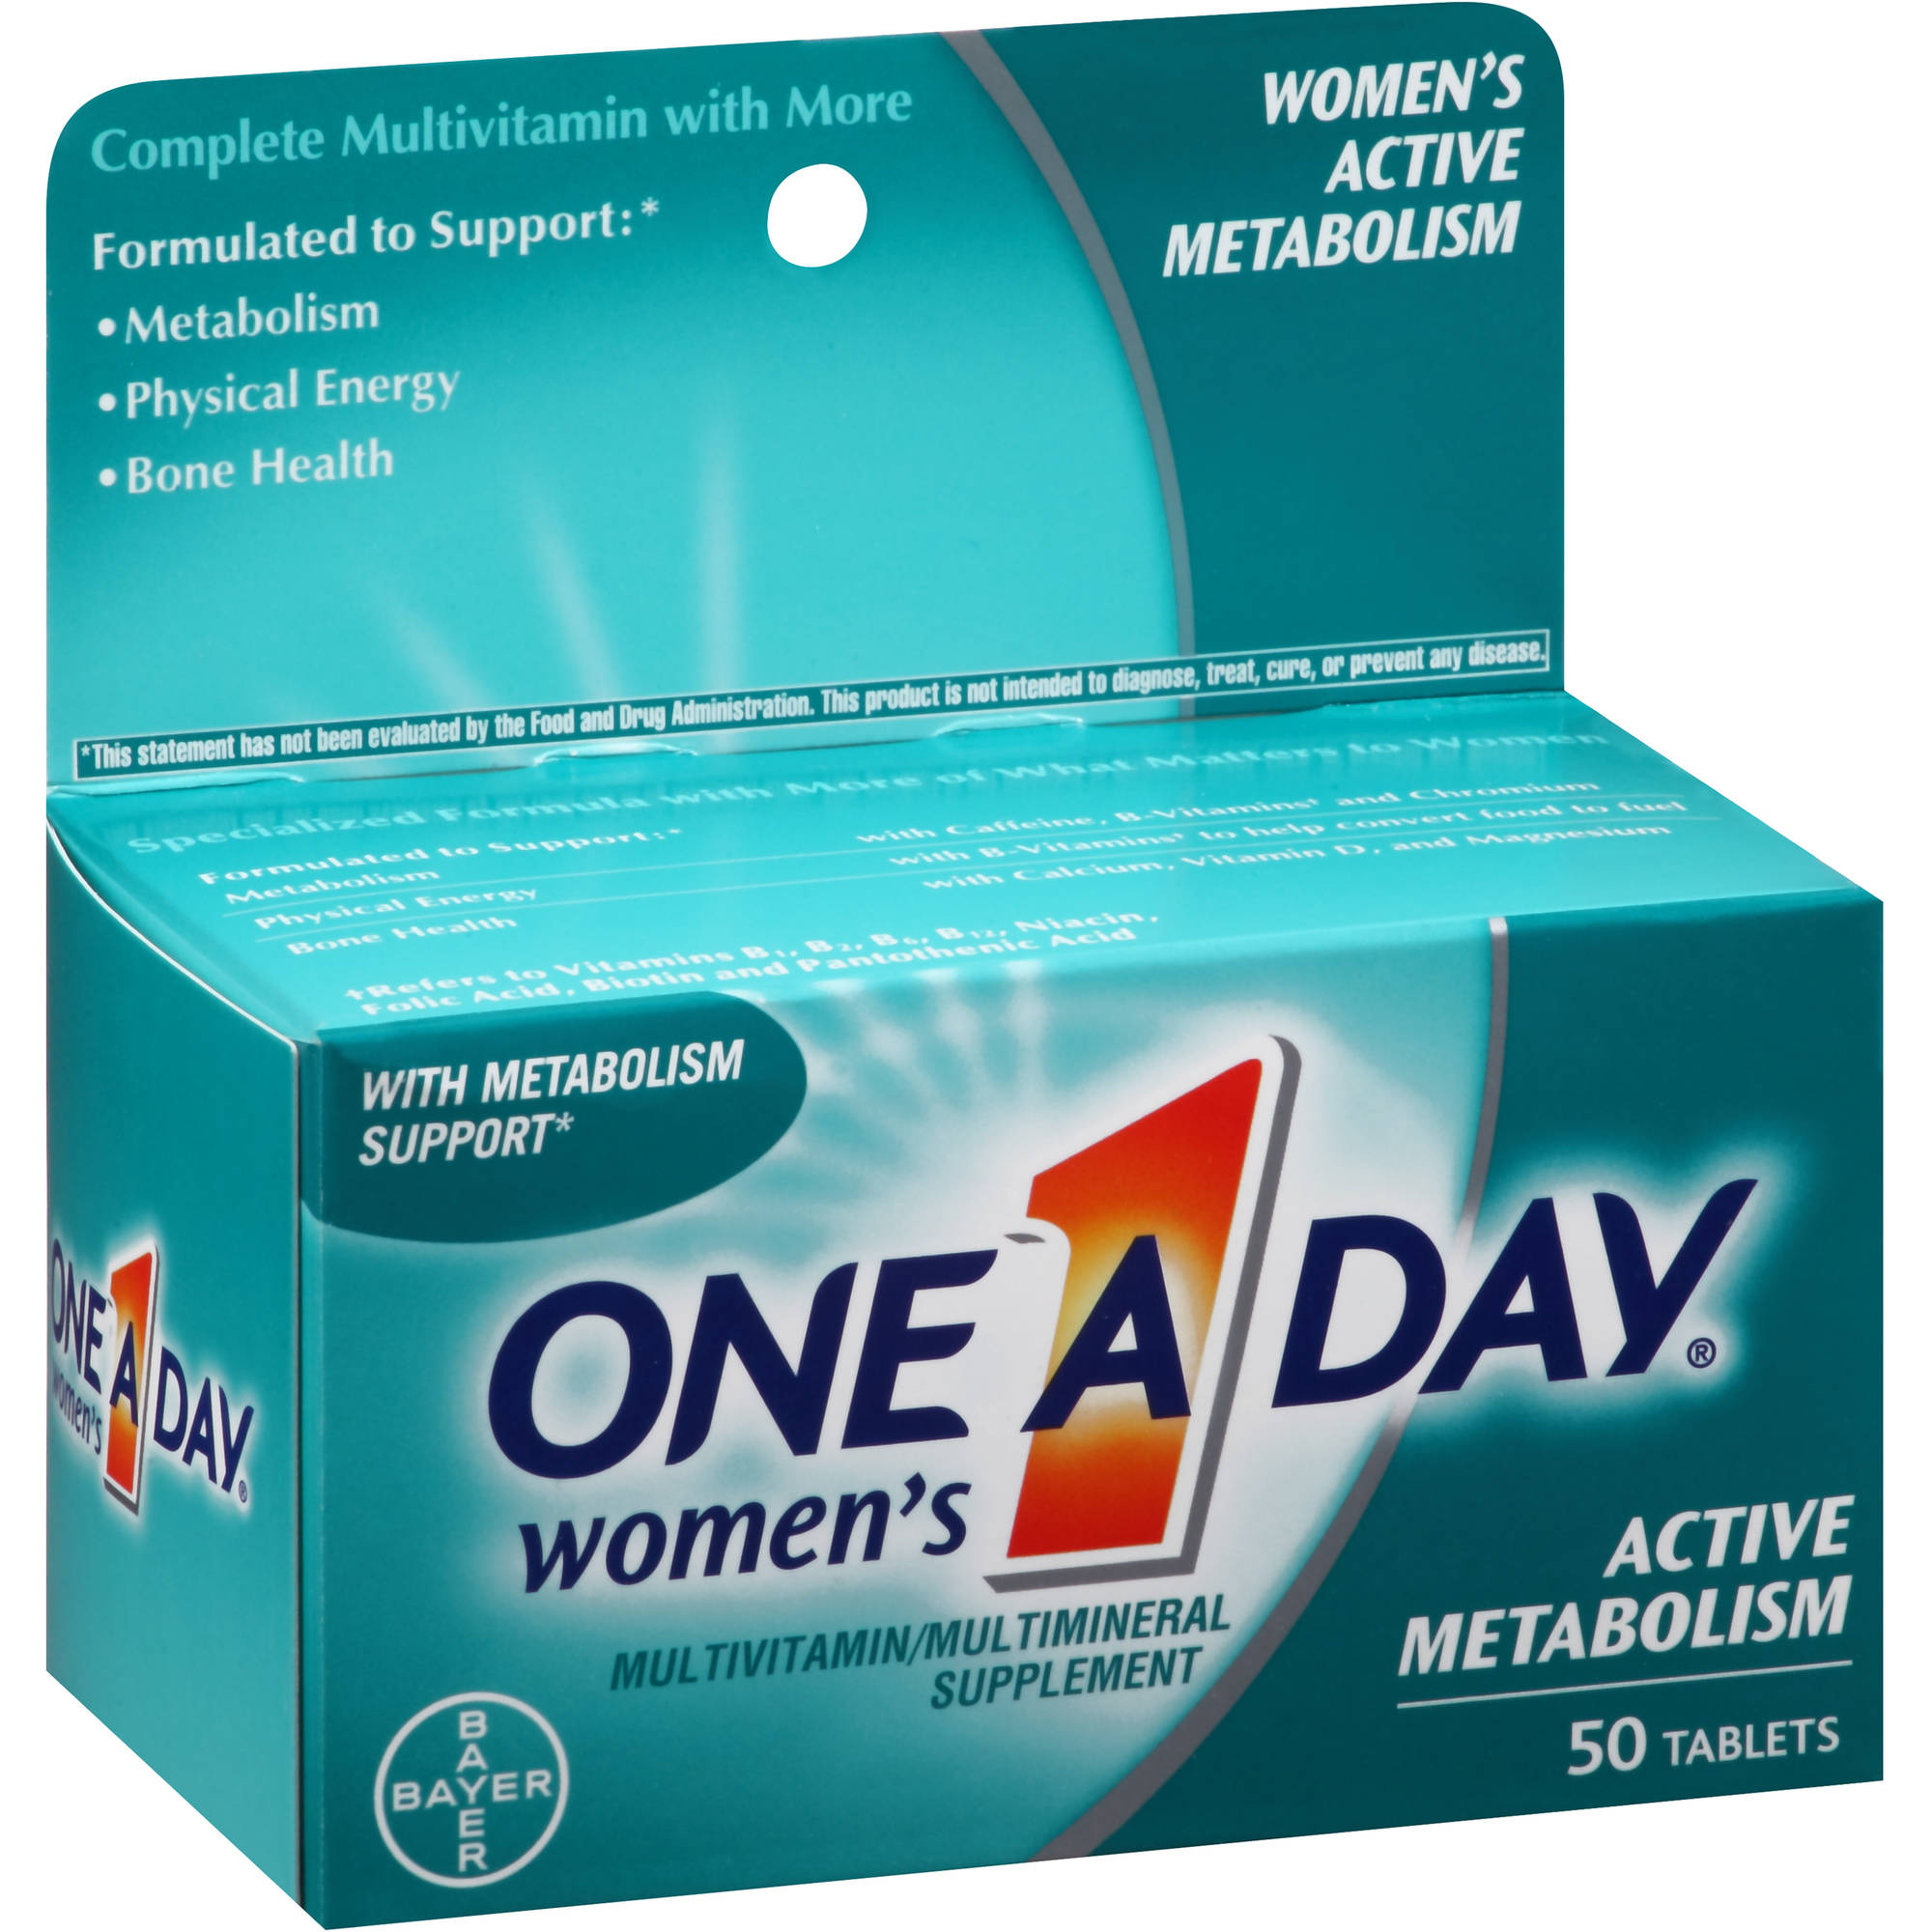 One A Day Women's Active Metabolism Multivitamin/Multimineral Supplement, 50 count